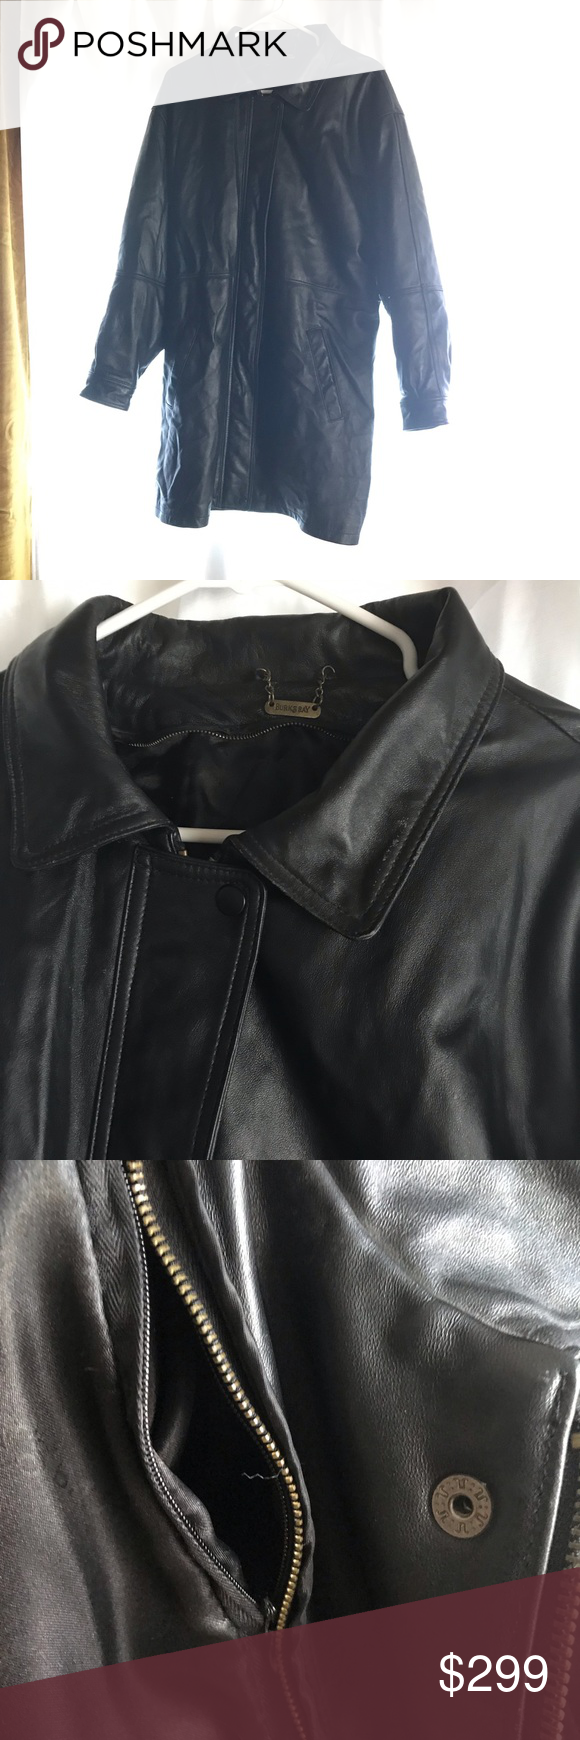 Matrix Genuine Leather Long Jacket Concealed Carry Long